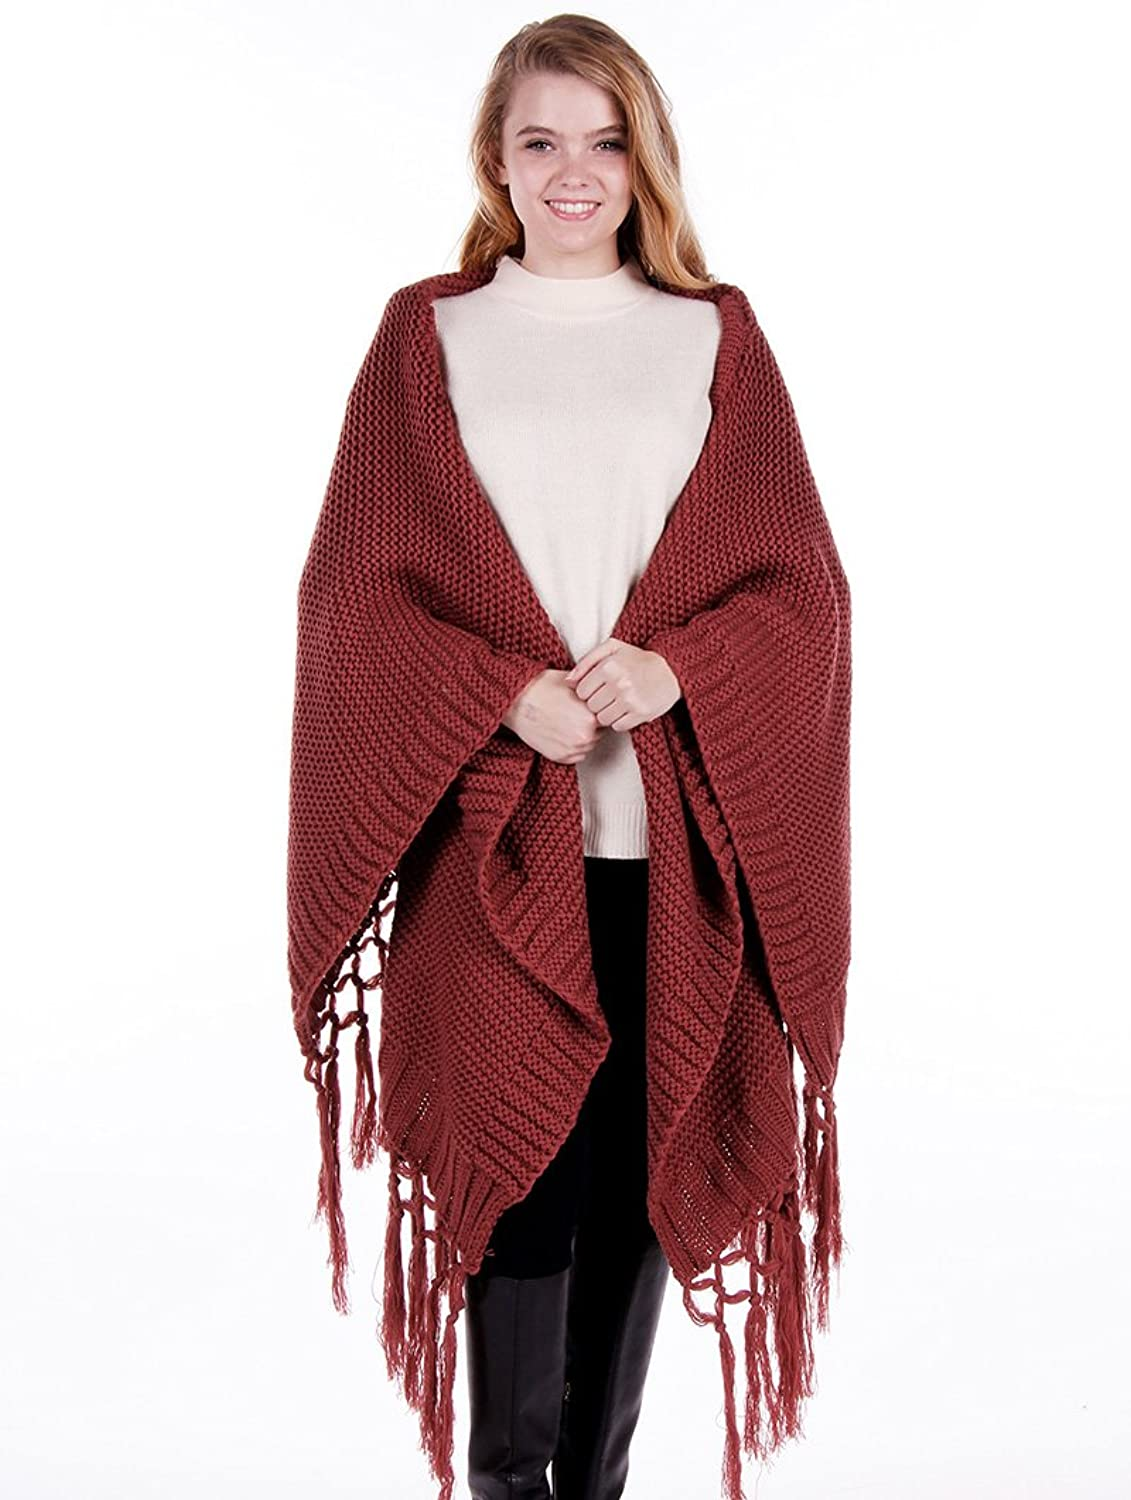 Parisian Chic Scarf Knitted Cape Poncho Tassel X Acrylic One Size Winter Knit burgundy